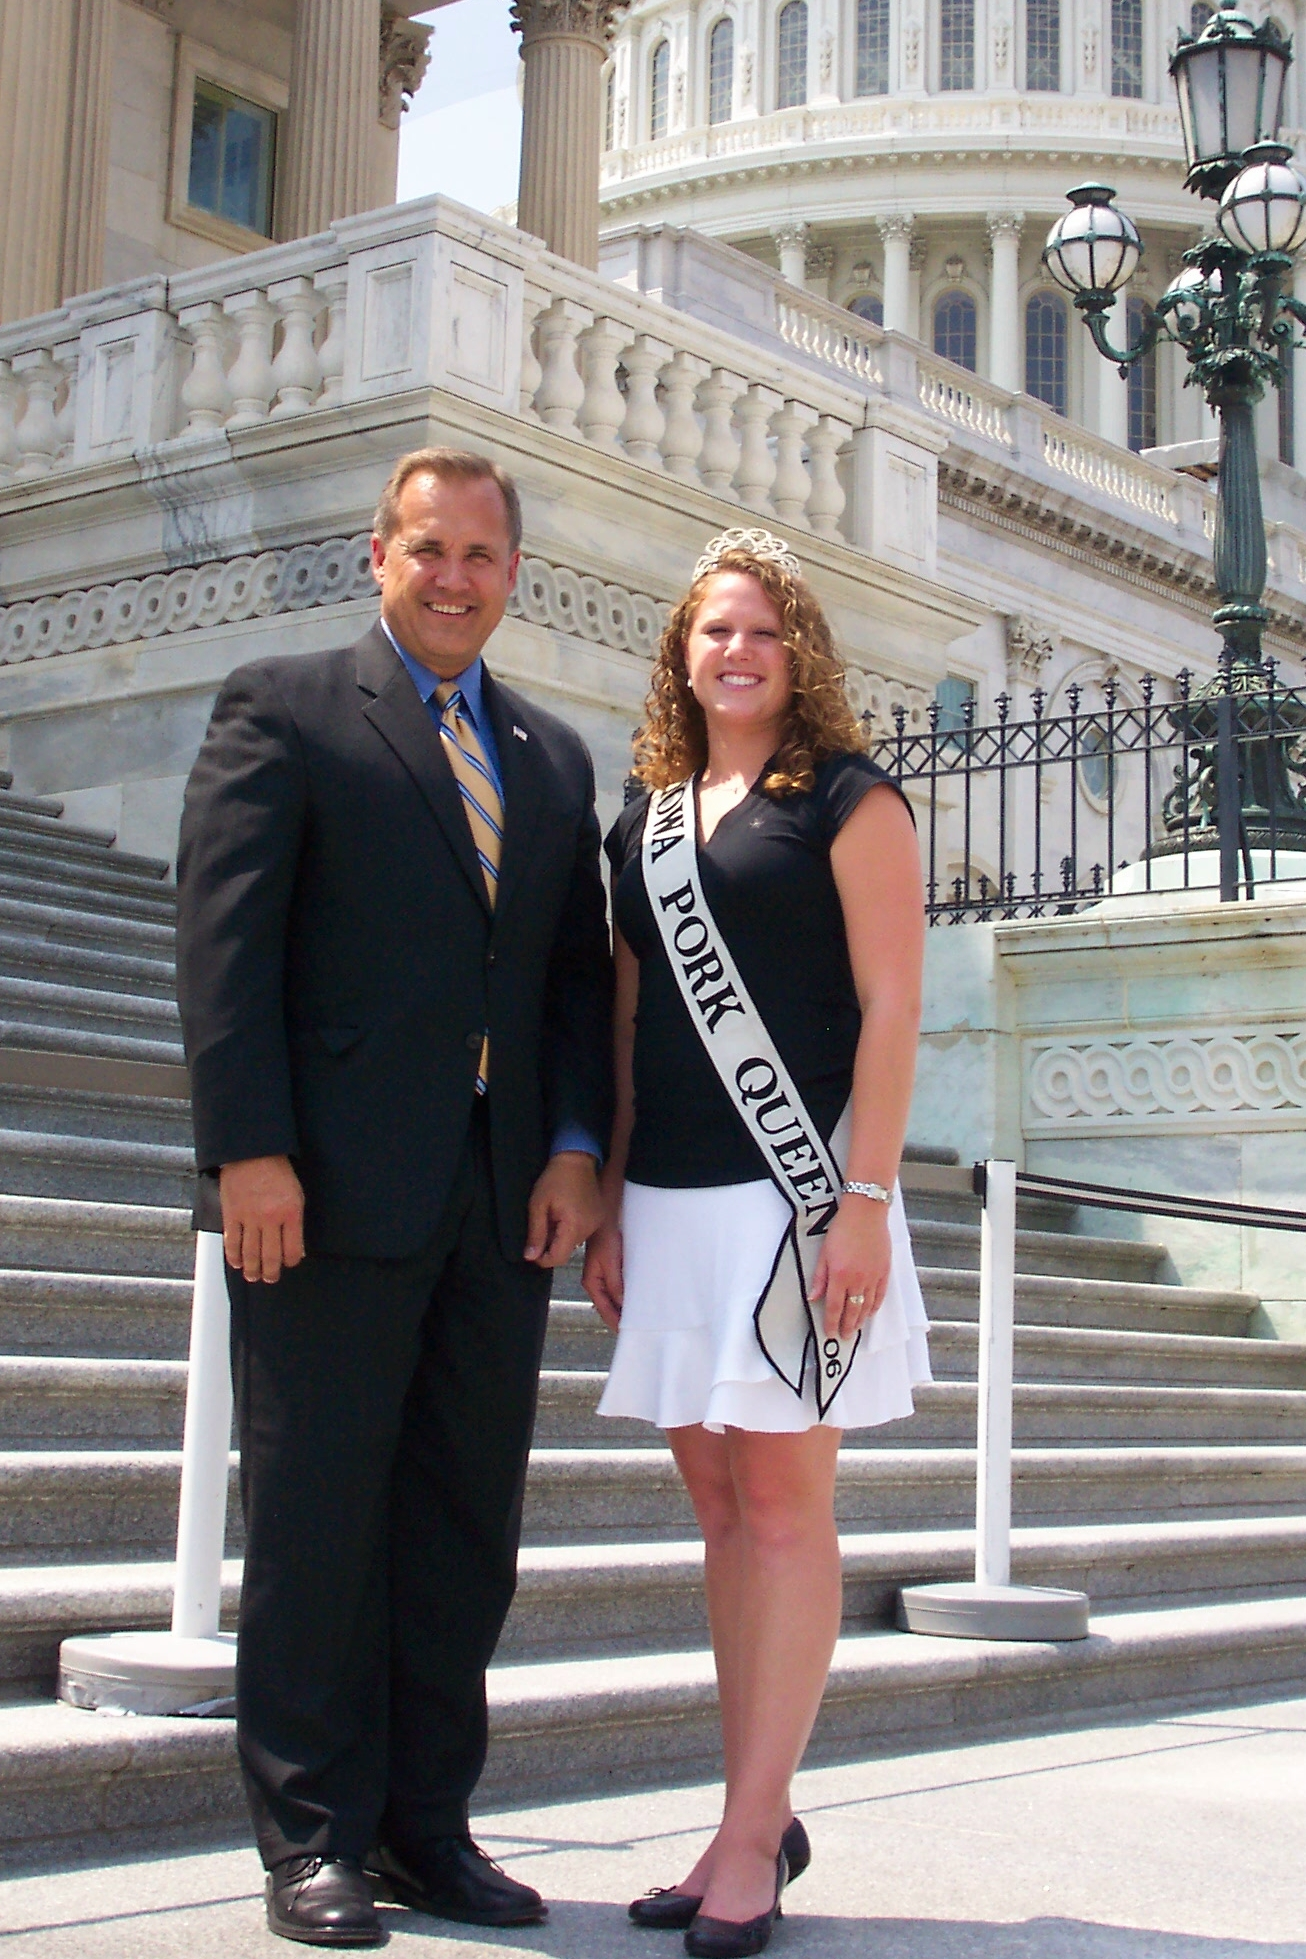 Jim with Iowa Pork Queen, Amber Appleton, on the steps of the United States Capitol.